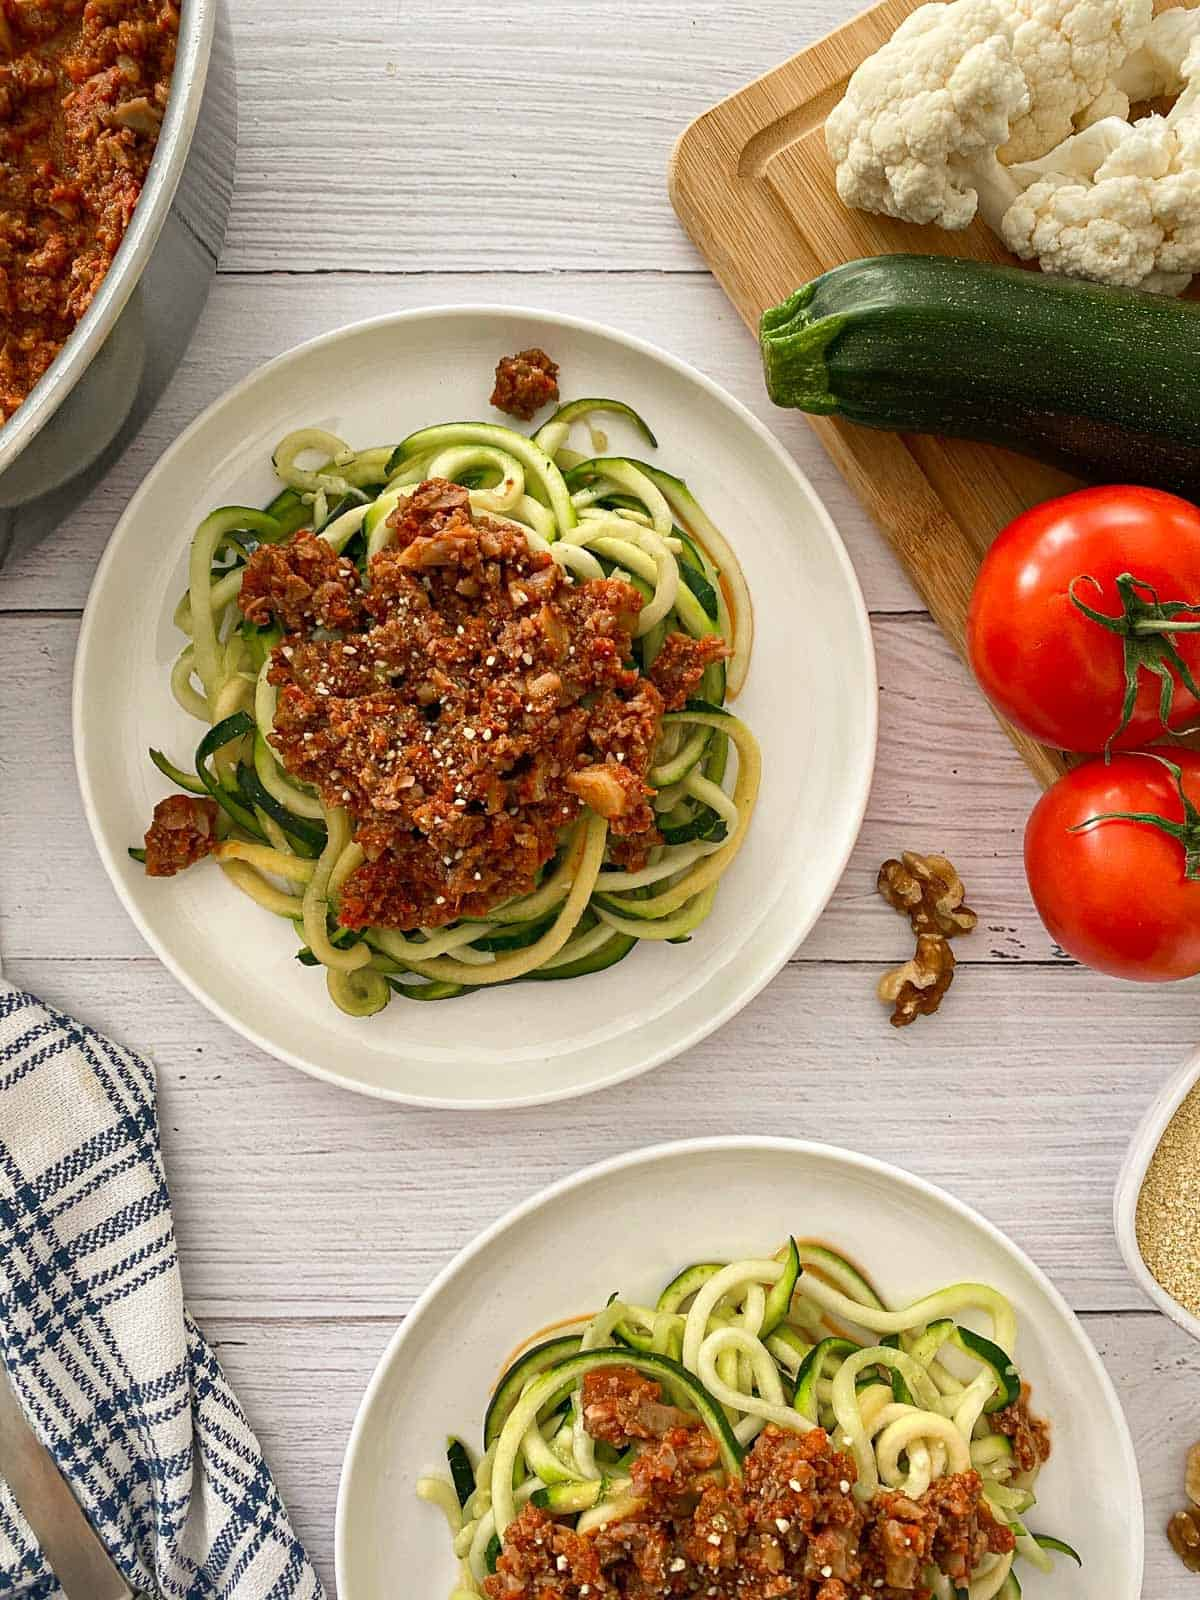 Zucchini pasta with vegan bolognese sauce on top and tomatoes and zucchini on the side.